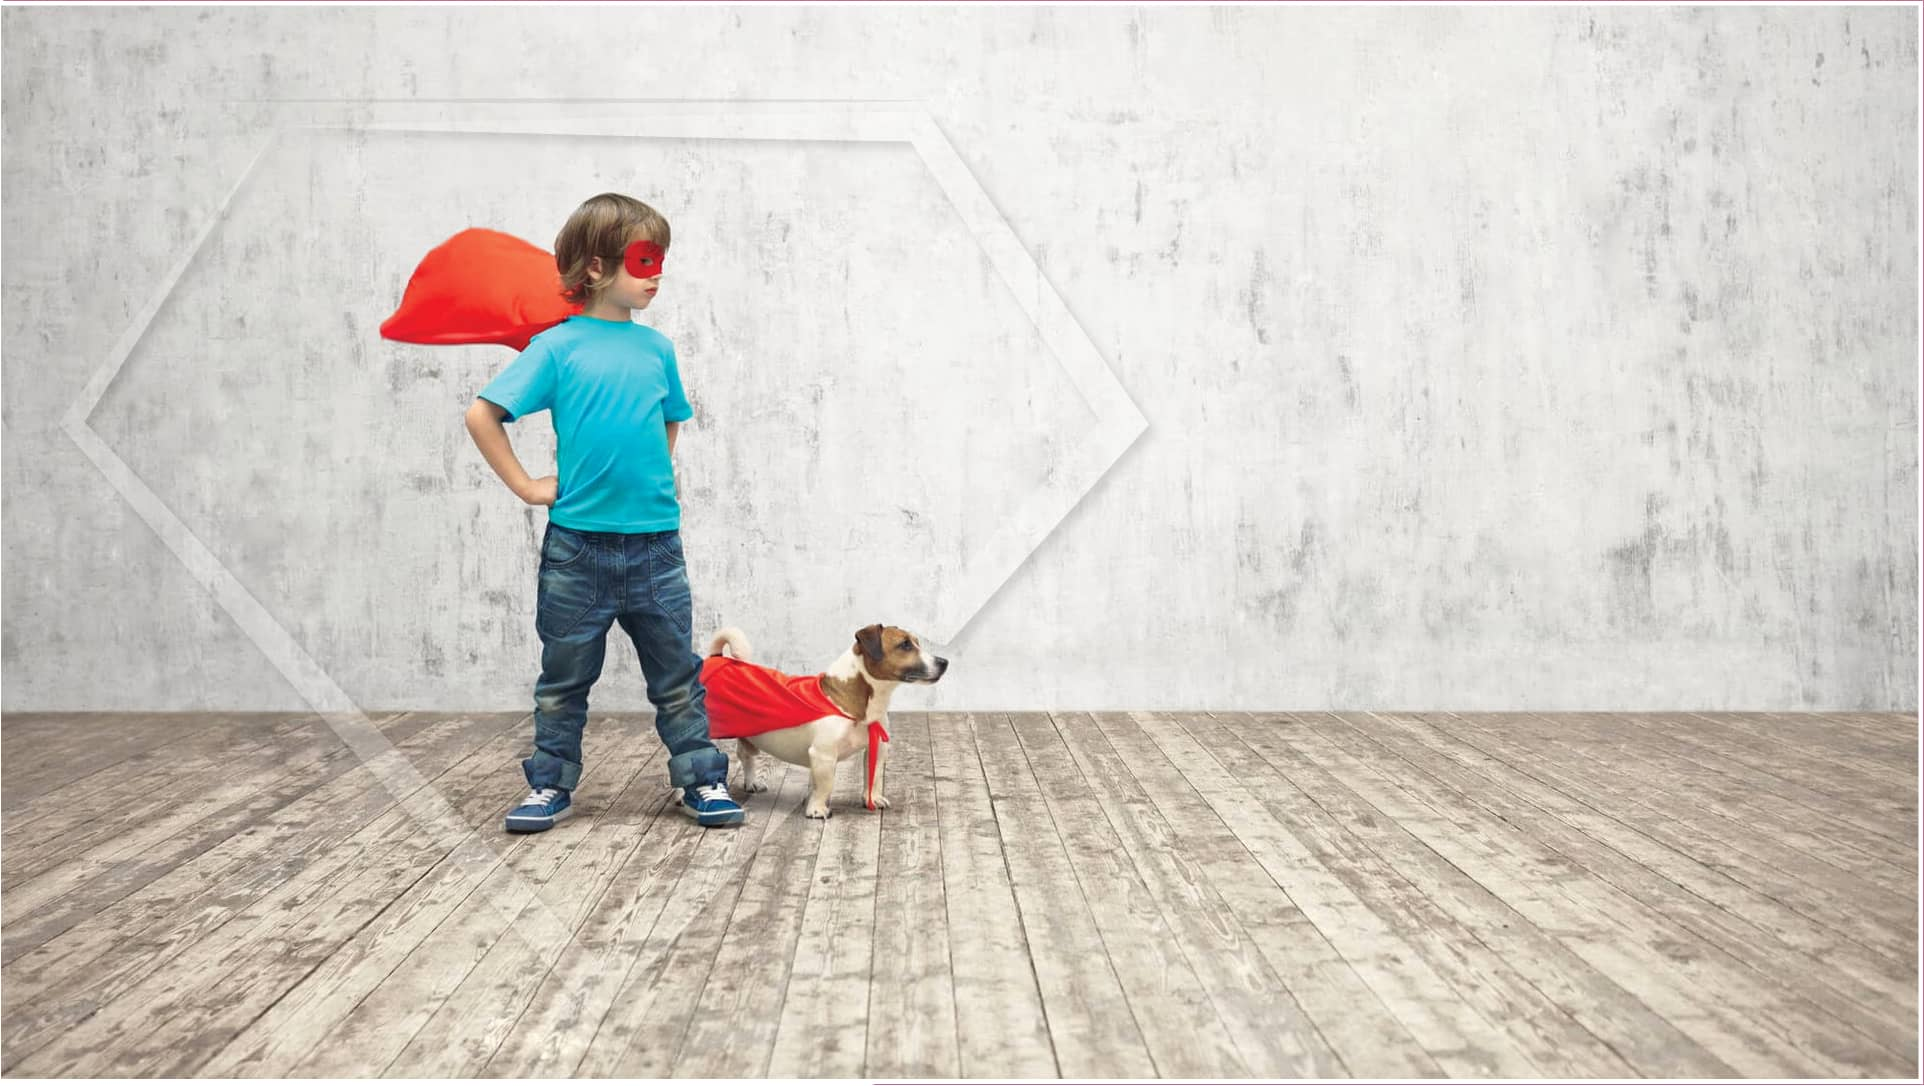 young boy and dog with capes